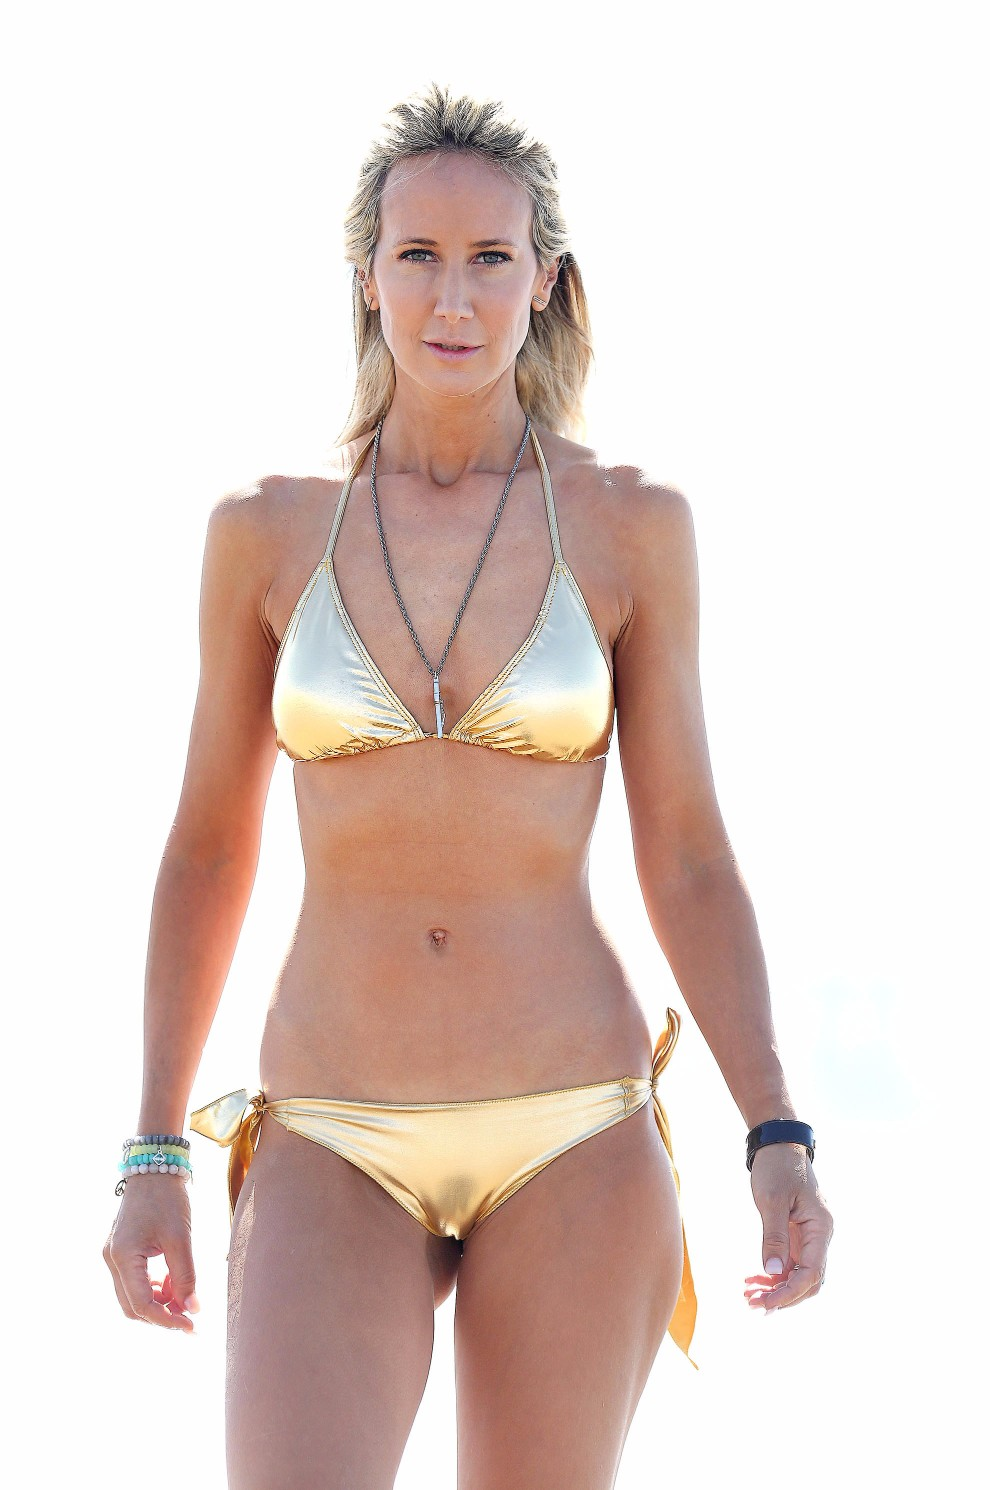 victoria-hervey-wearing-a-gold-bikini-in-los-angeles-16